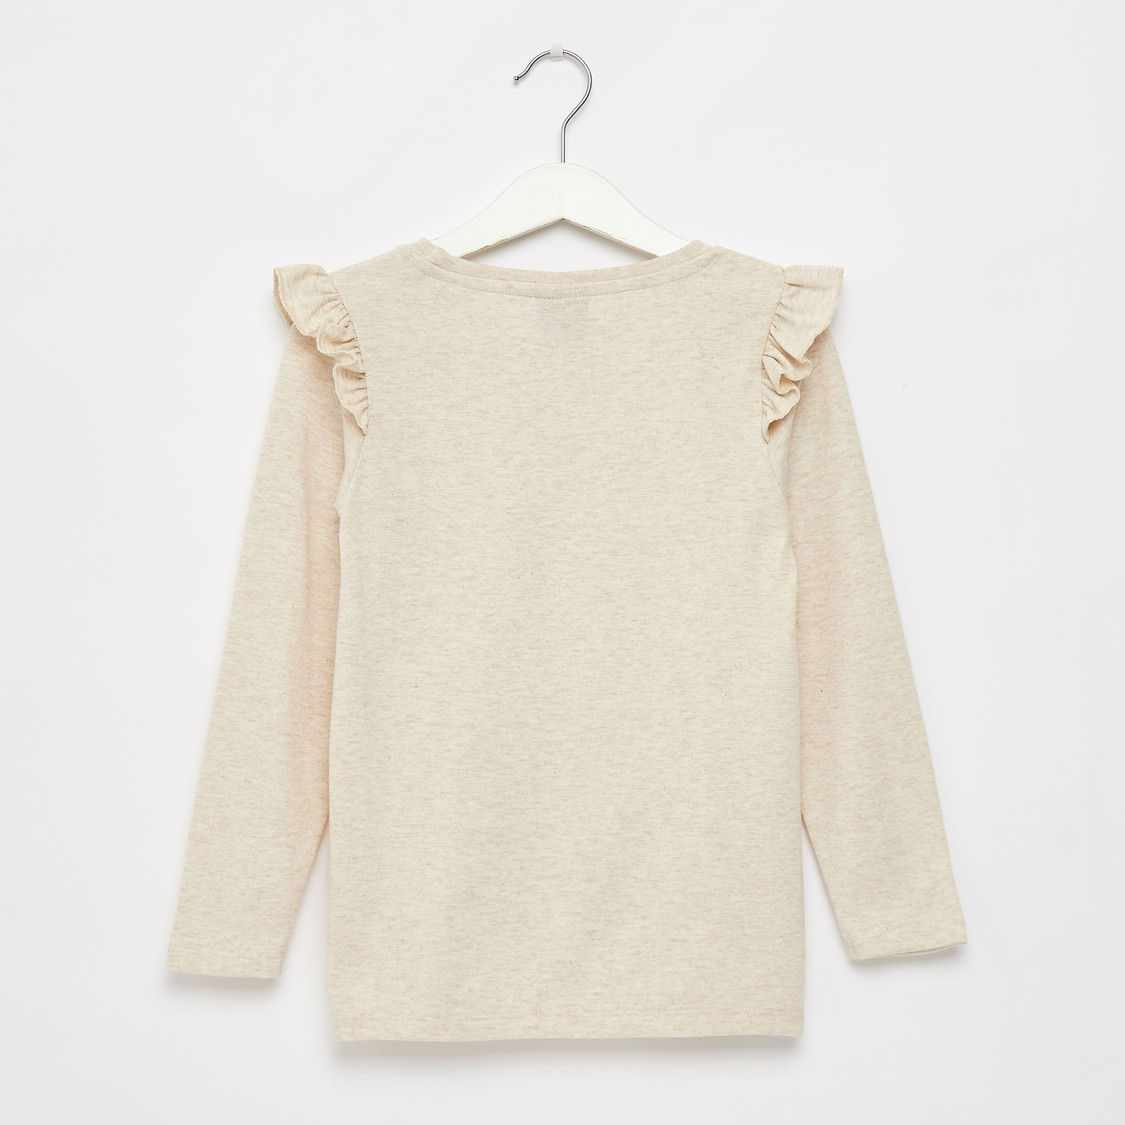 Peanuts Print Round Neck T-shirt with Long Sleeves and Ruffles